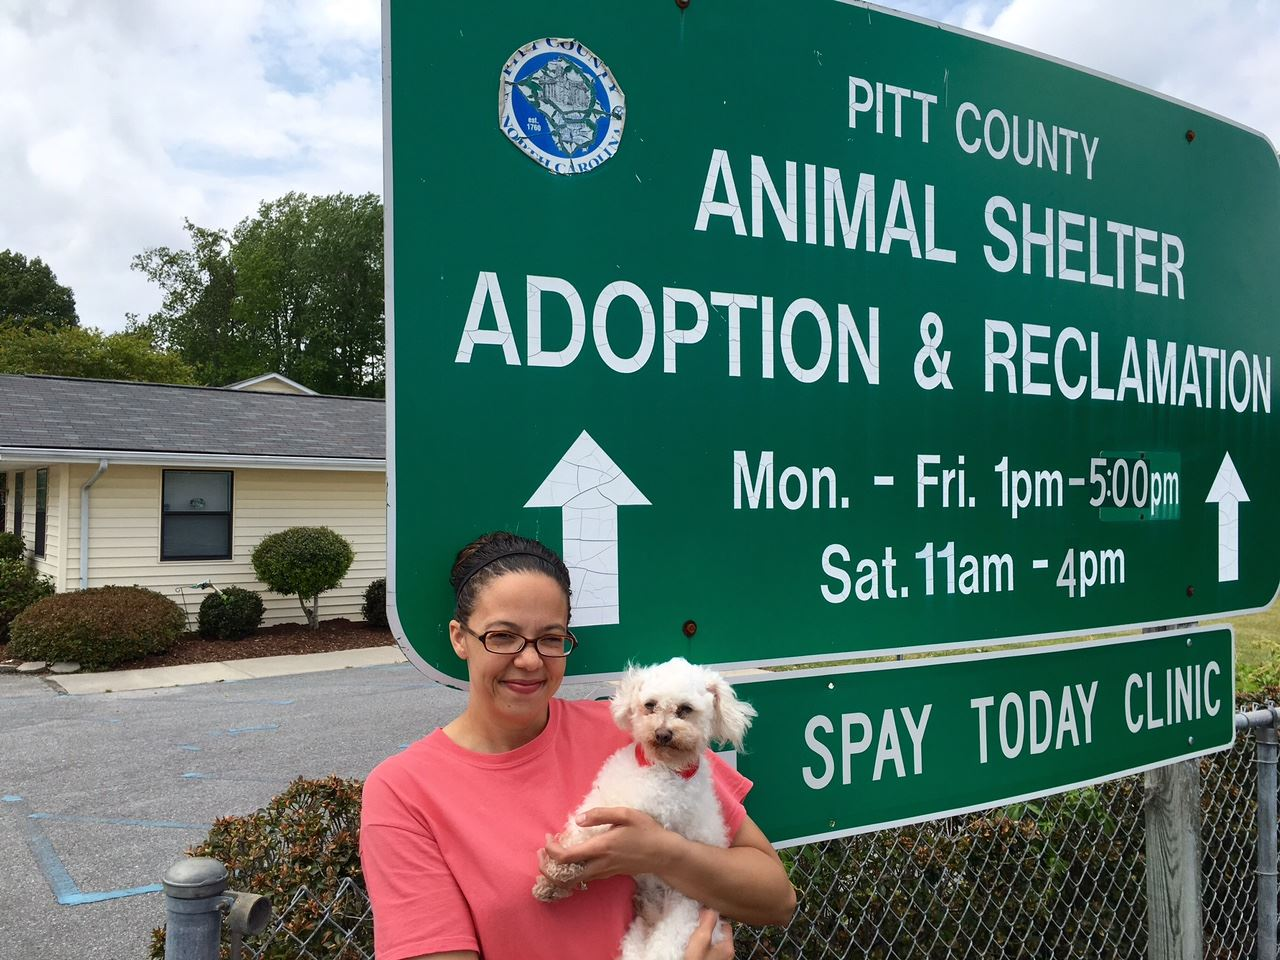 Employee holding a dog by the shelter sign